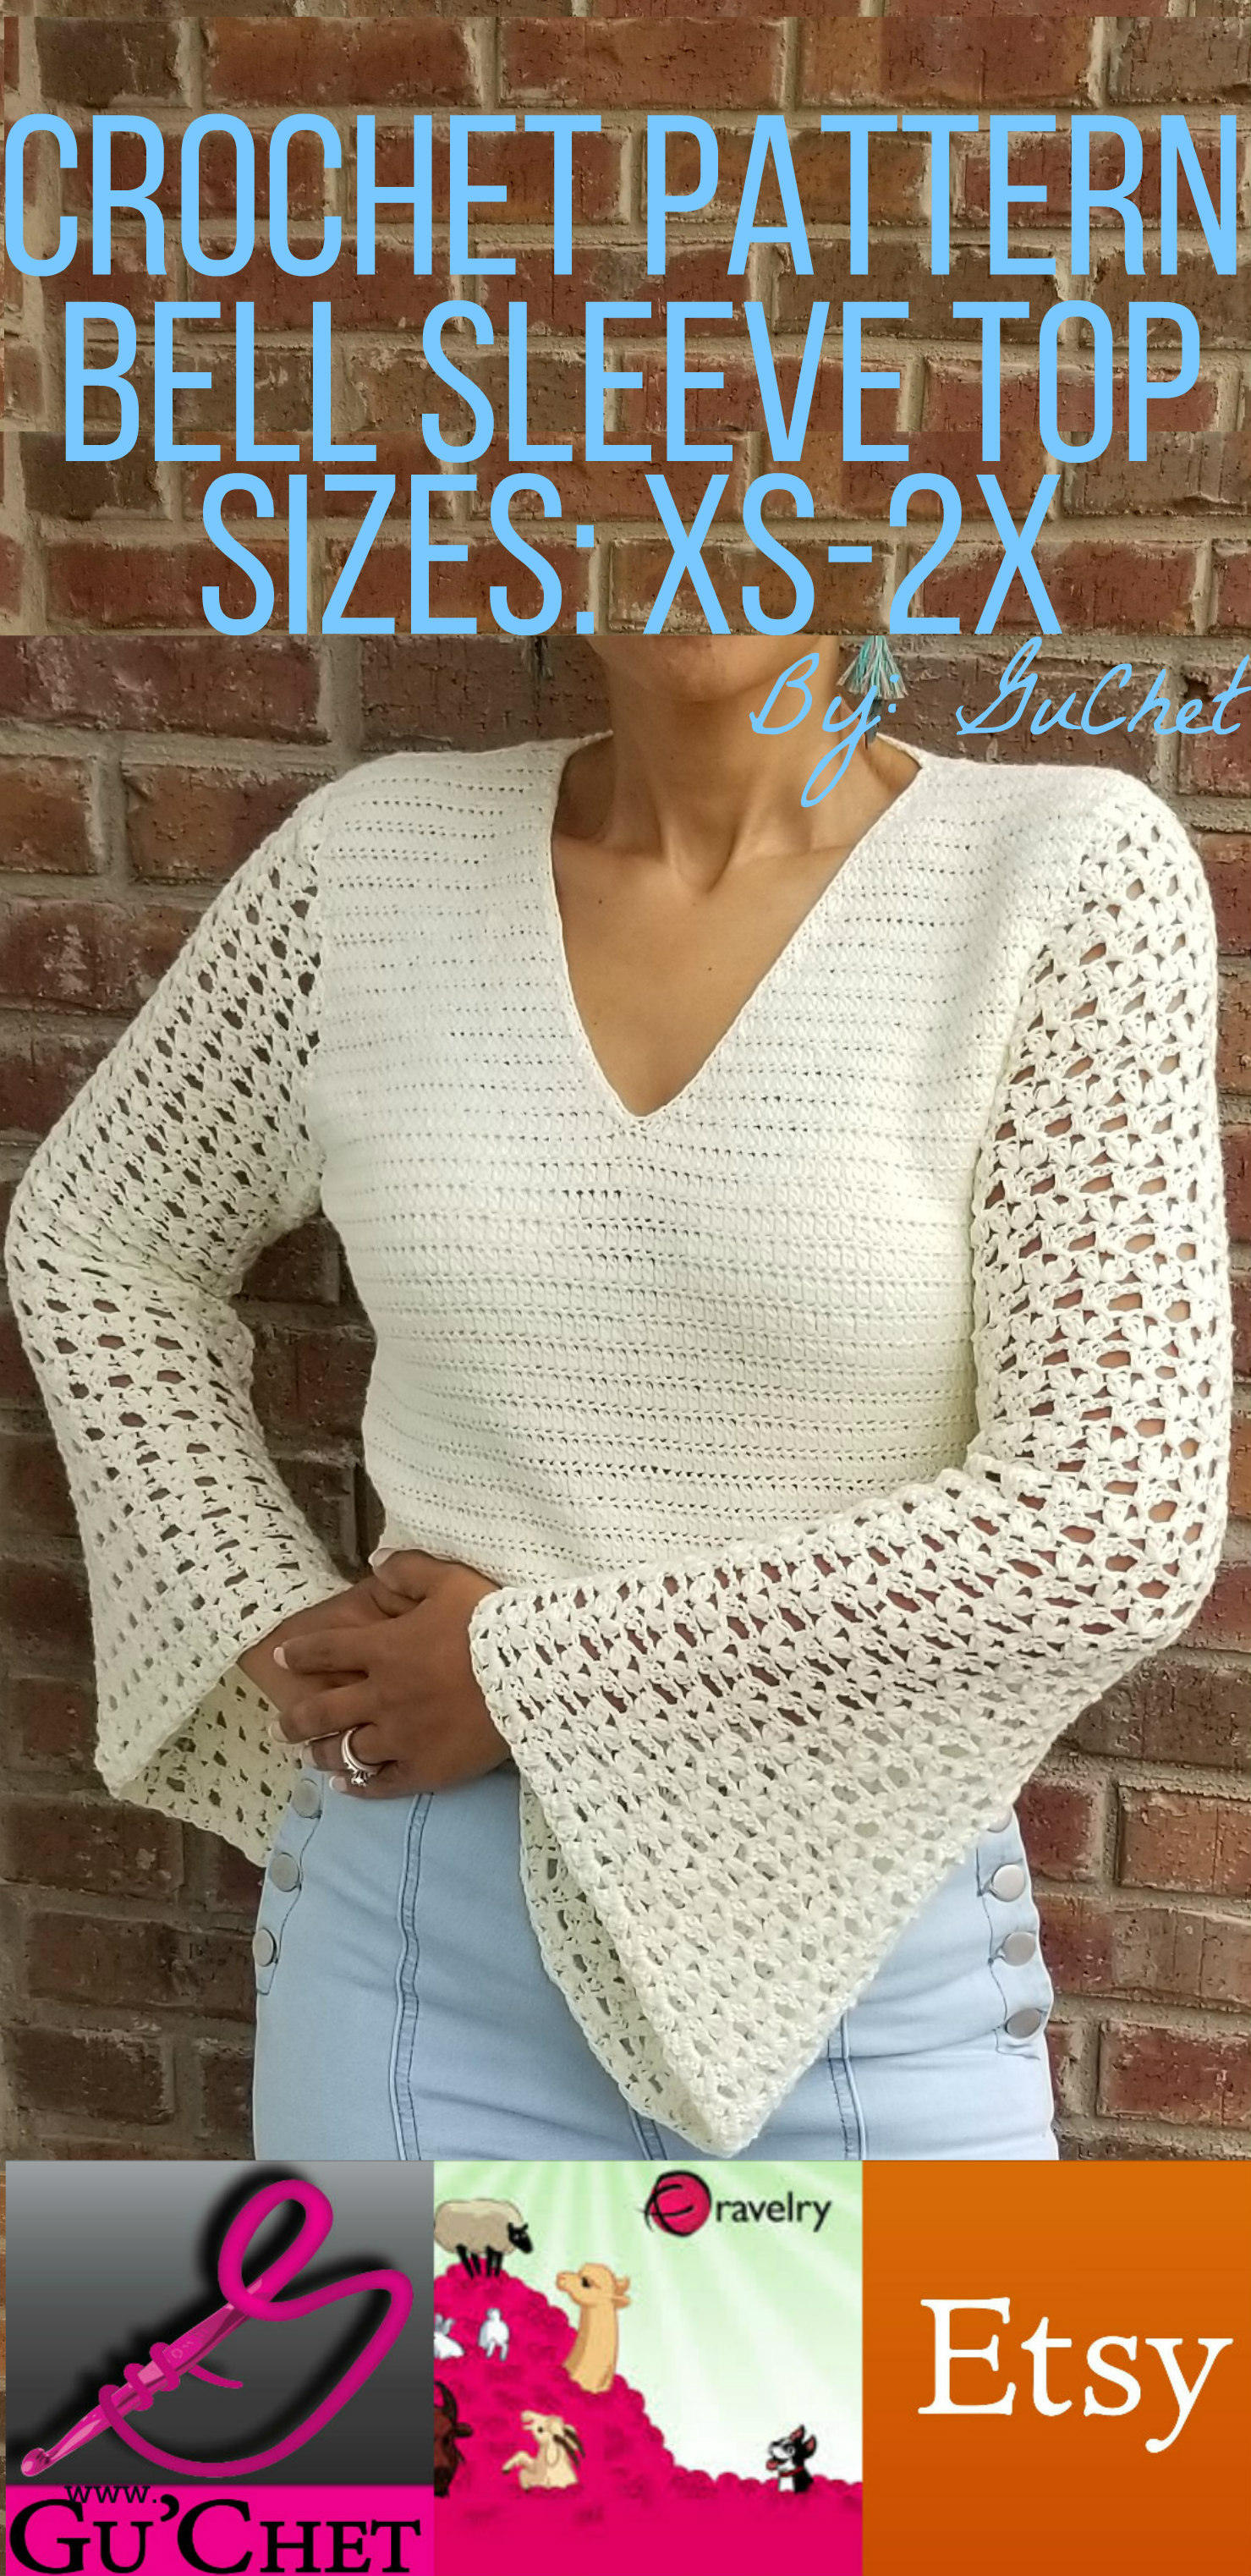 3_Crochet Top Pattern by GuChet_Bell Sleeve Top_25.jpg